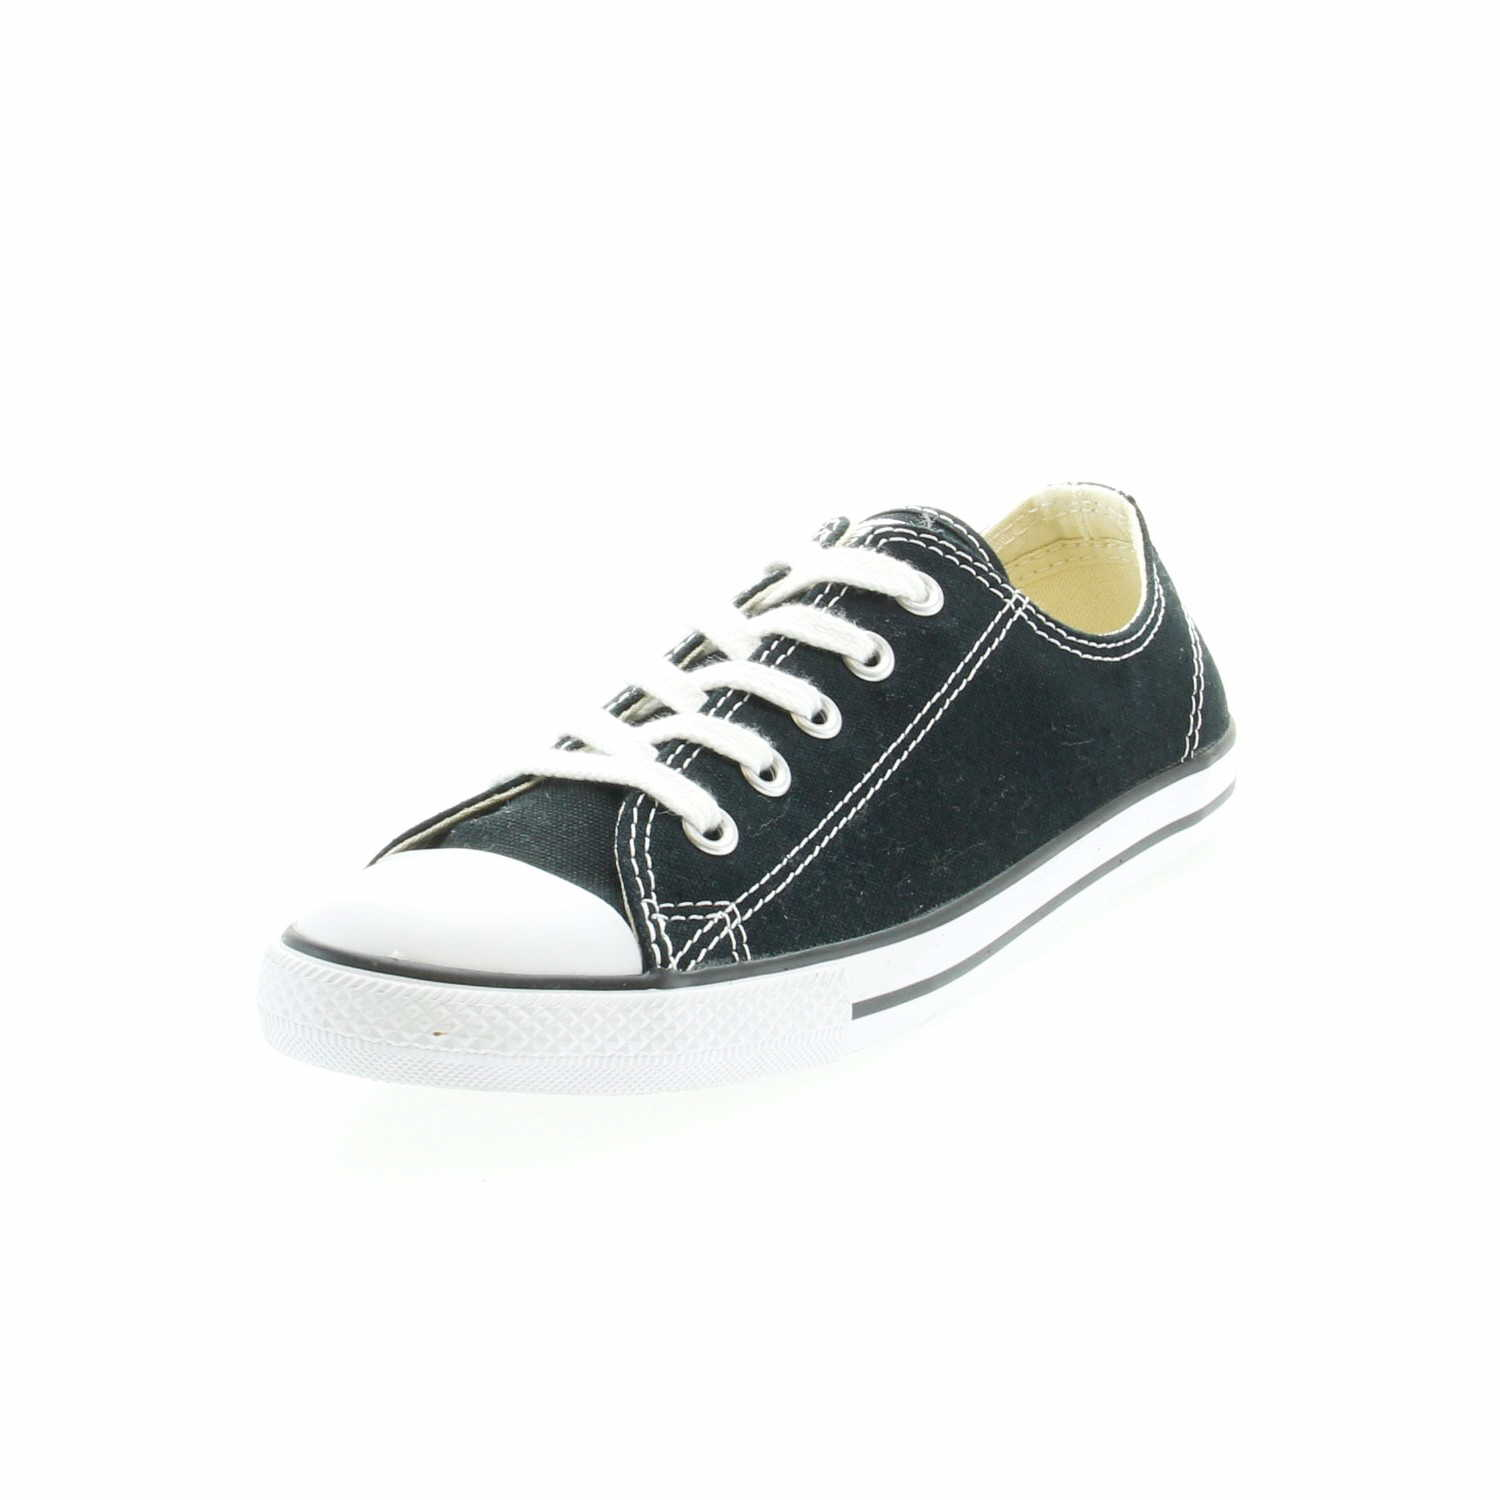 Converse CT AS Dainty OX 530054C